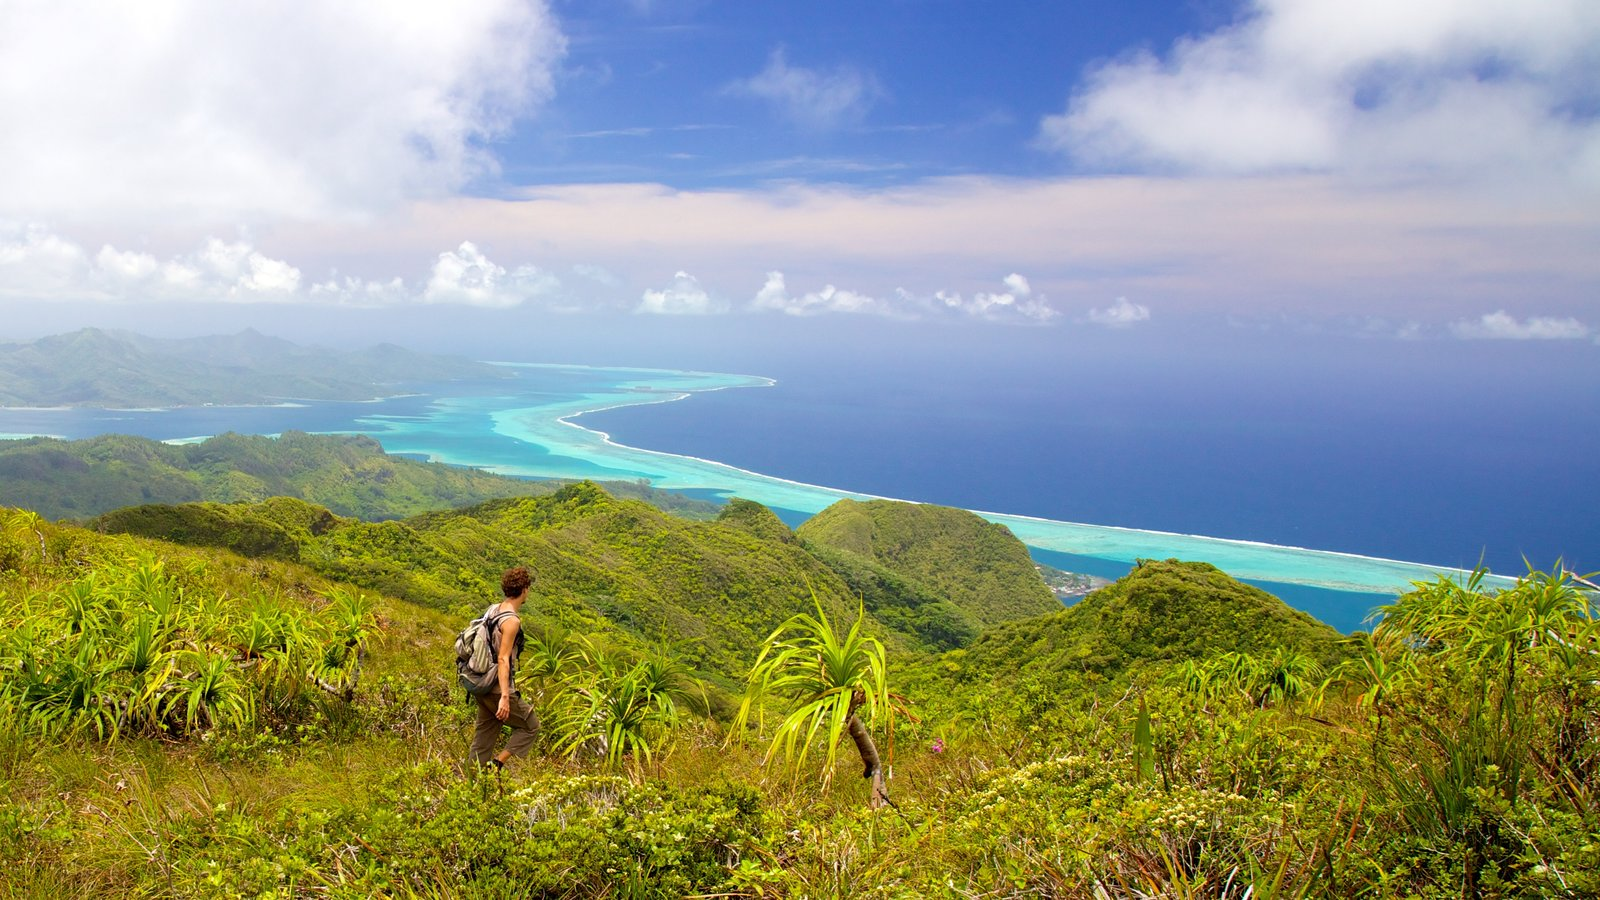 Tahiti featuring hiking or walking, landscape views and tranquil scenes